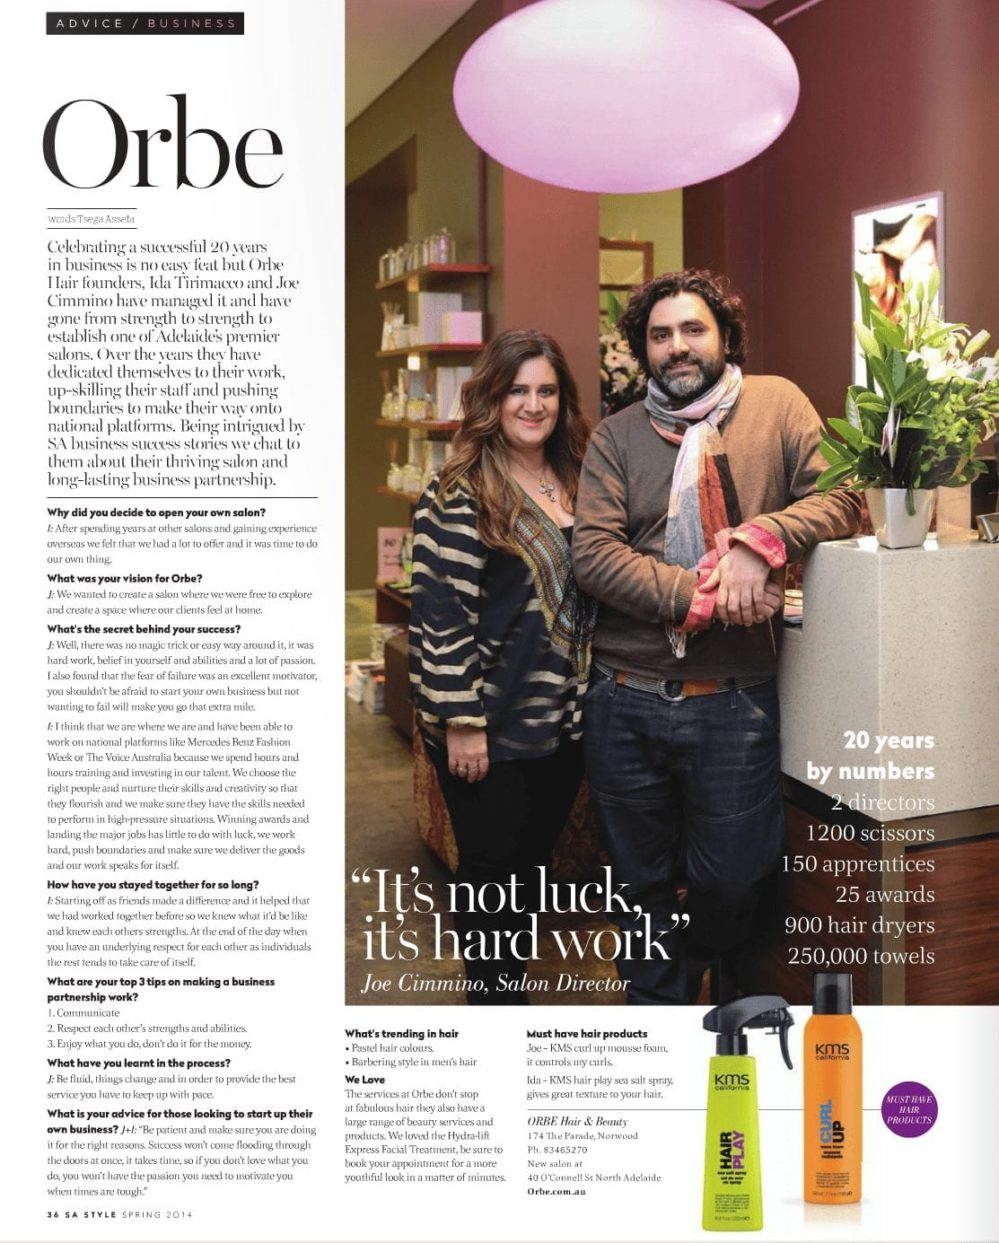 Orbe's successful 20 years – Issue SA Style, Issue 19, Spring 2014